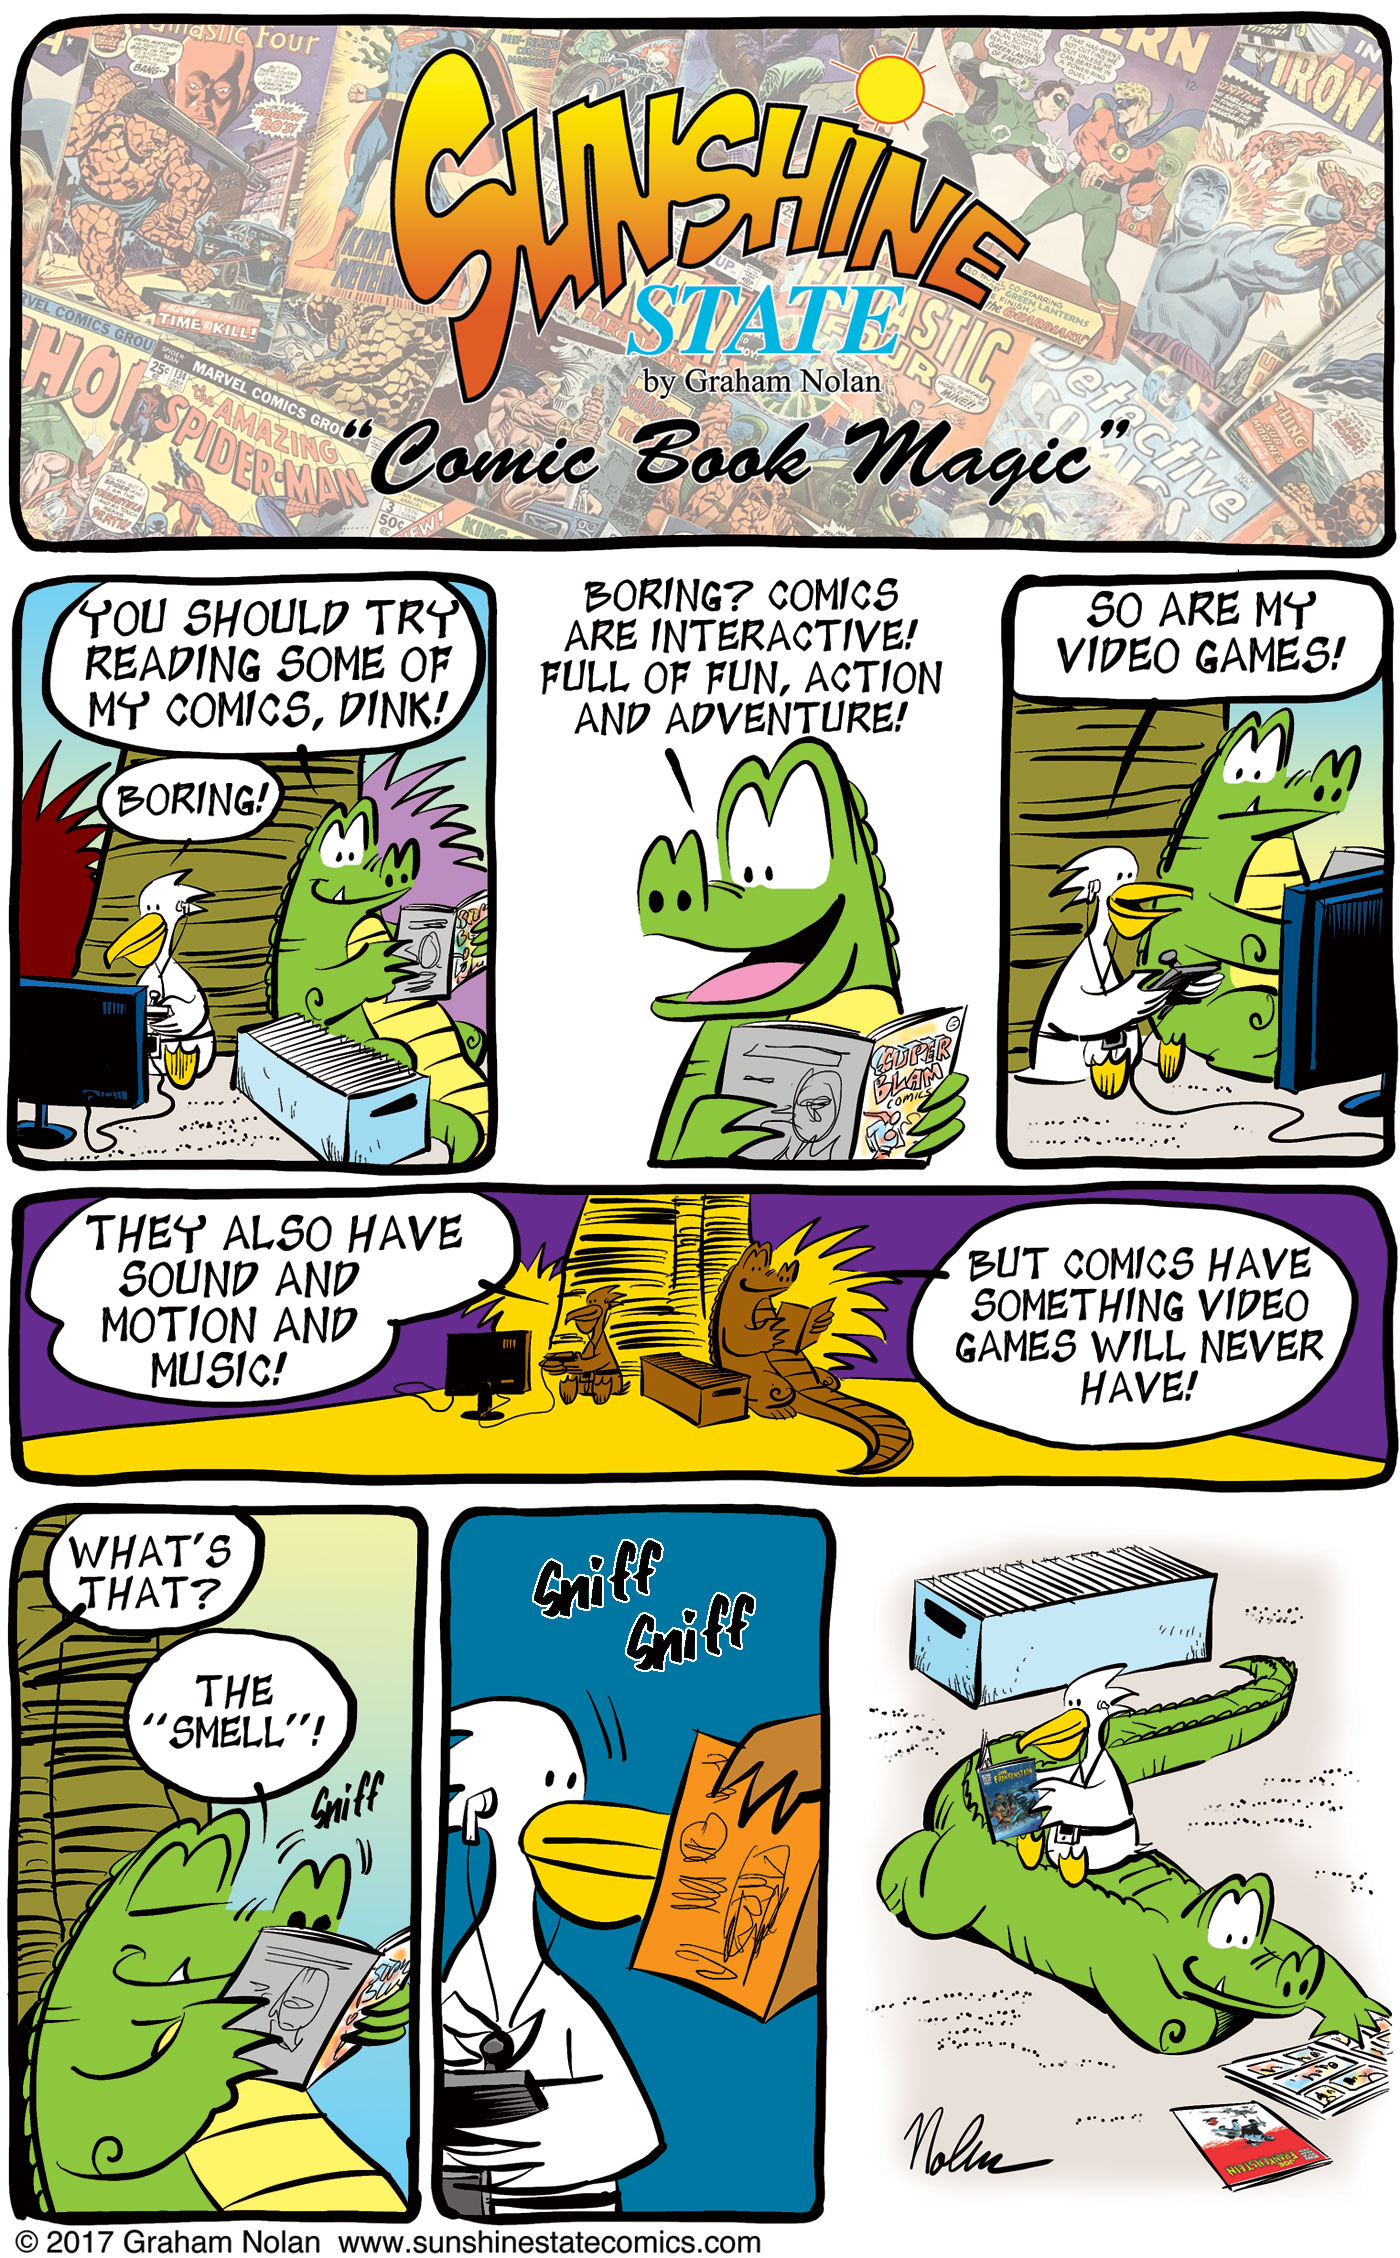 Comic Book Magic